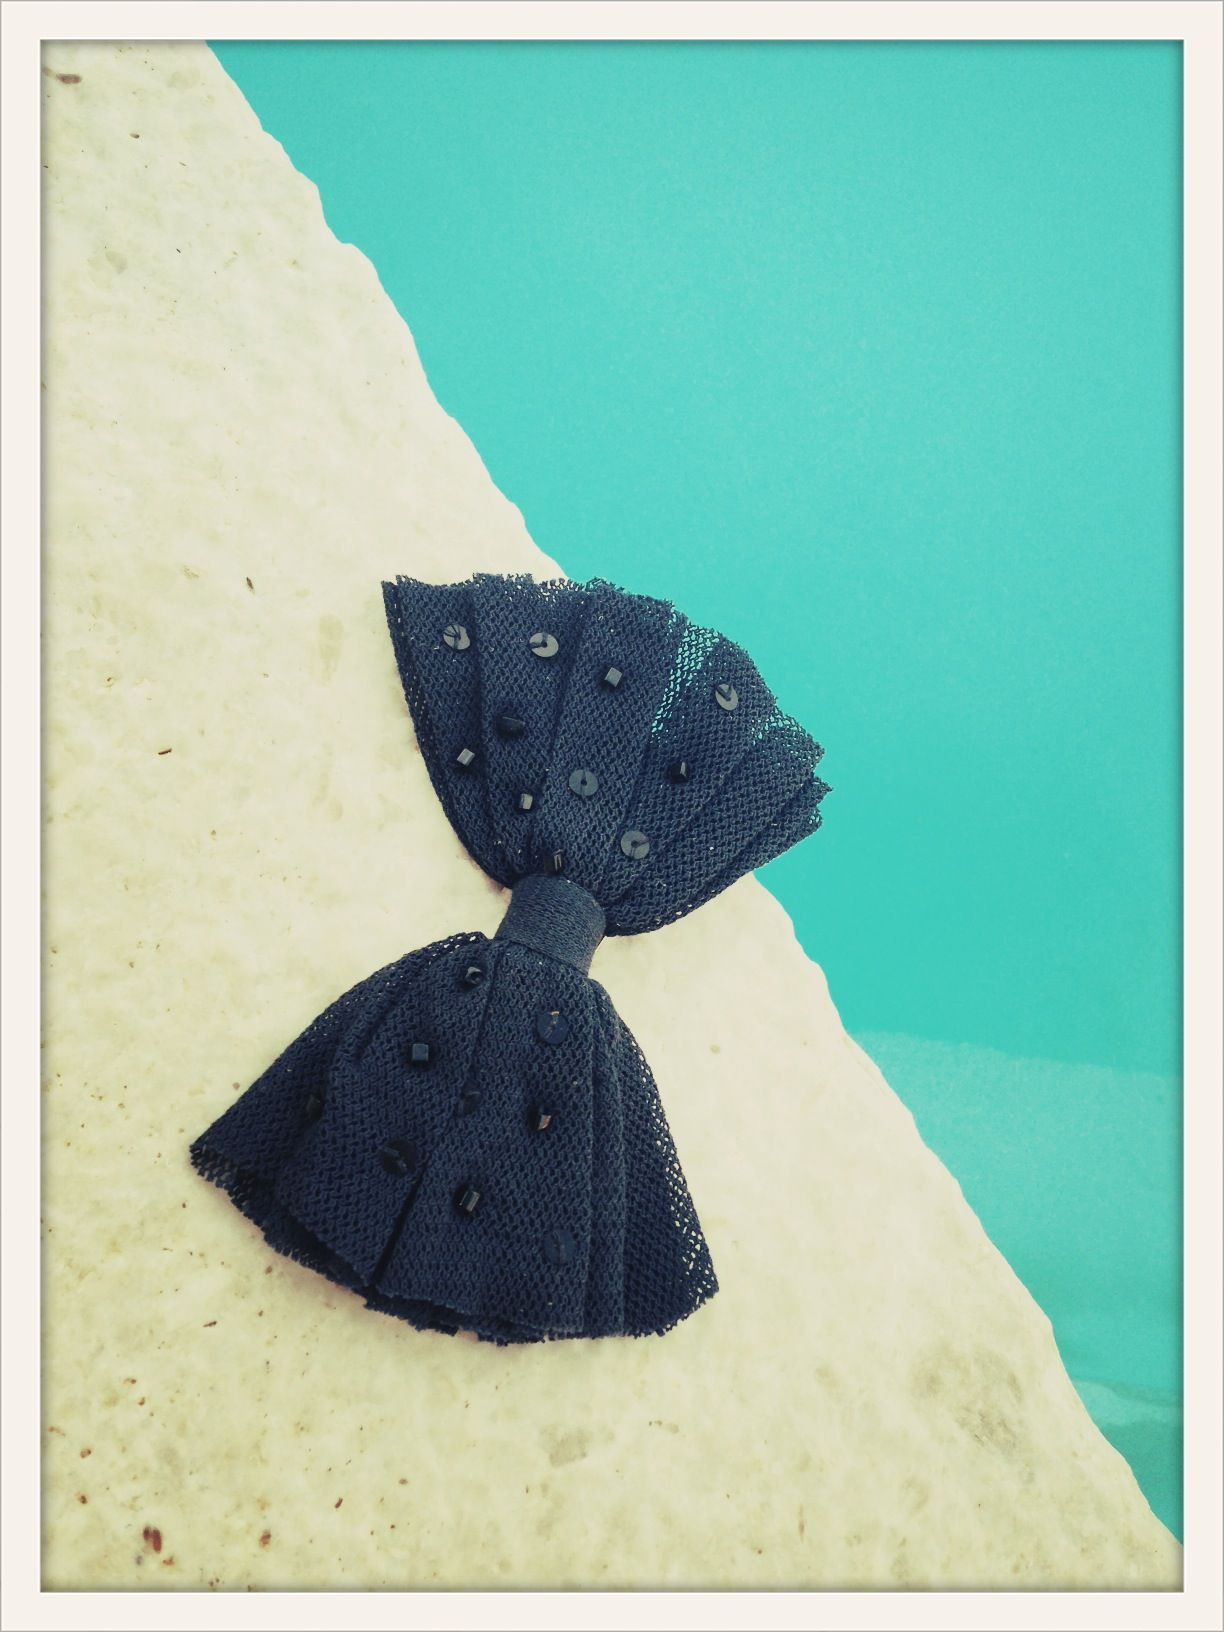 Yves at the pool #ohhyves #bow #bowtie #summer #pool #chic